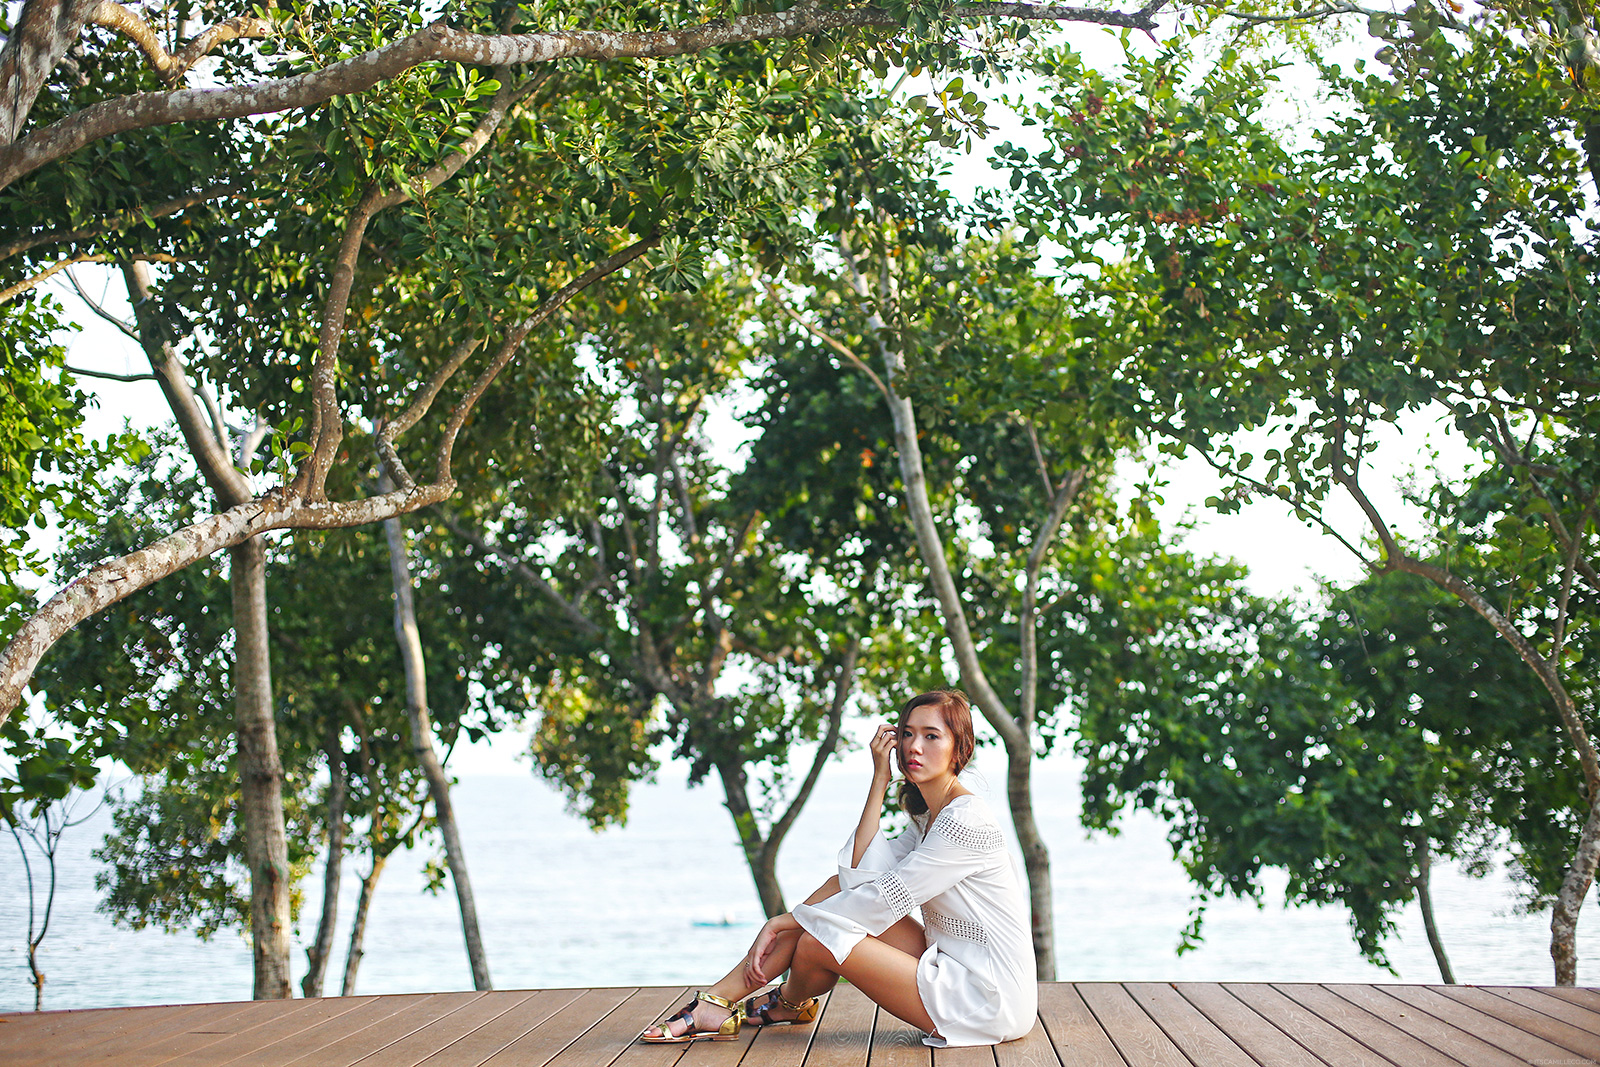 She Inside tunic, Rupert Sanderson sandals at Amorita Bohol | www.itscamilleco.com